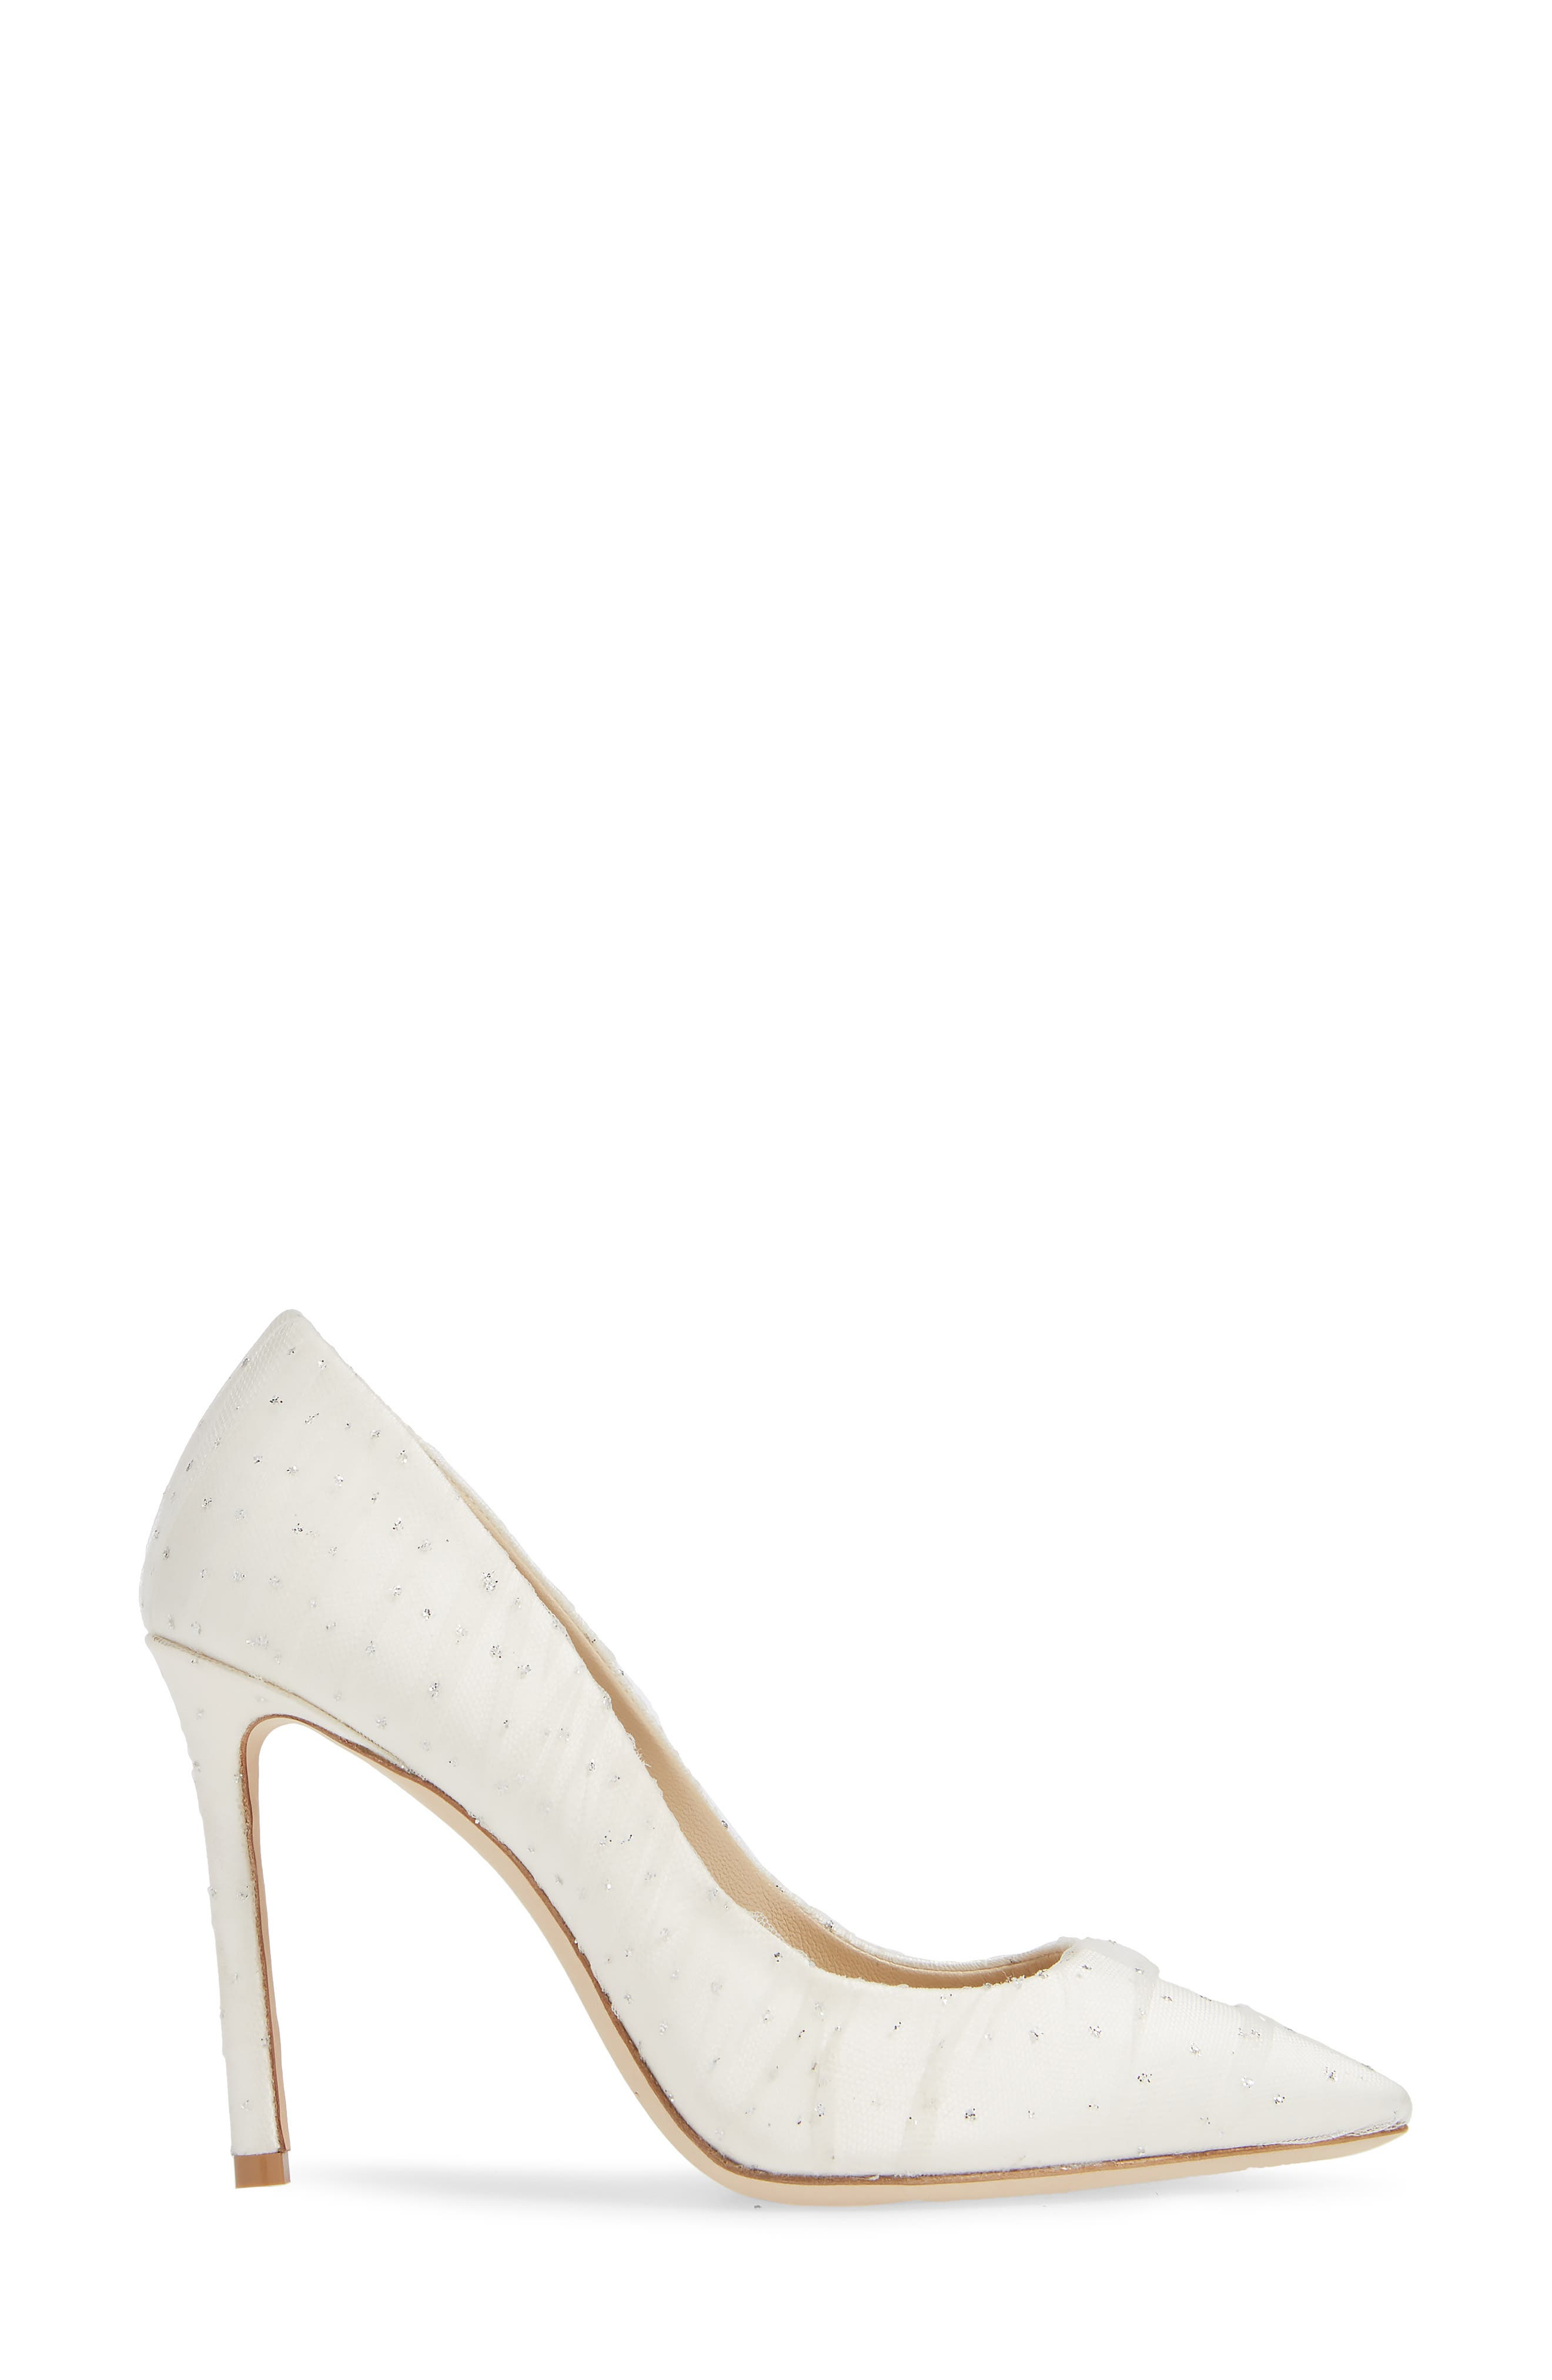 Romy Pointy Toe Pump,                             Alternate thumbnail 3, color,                             WHITE/ SILVER